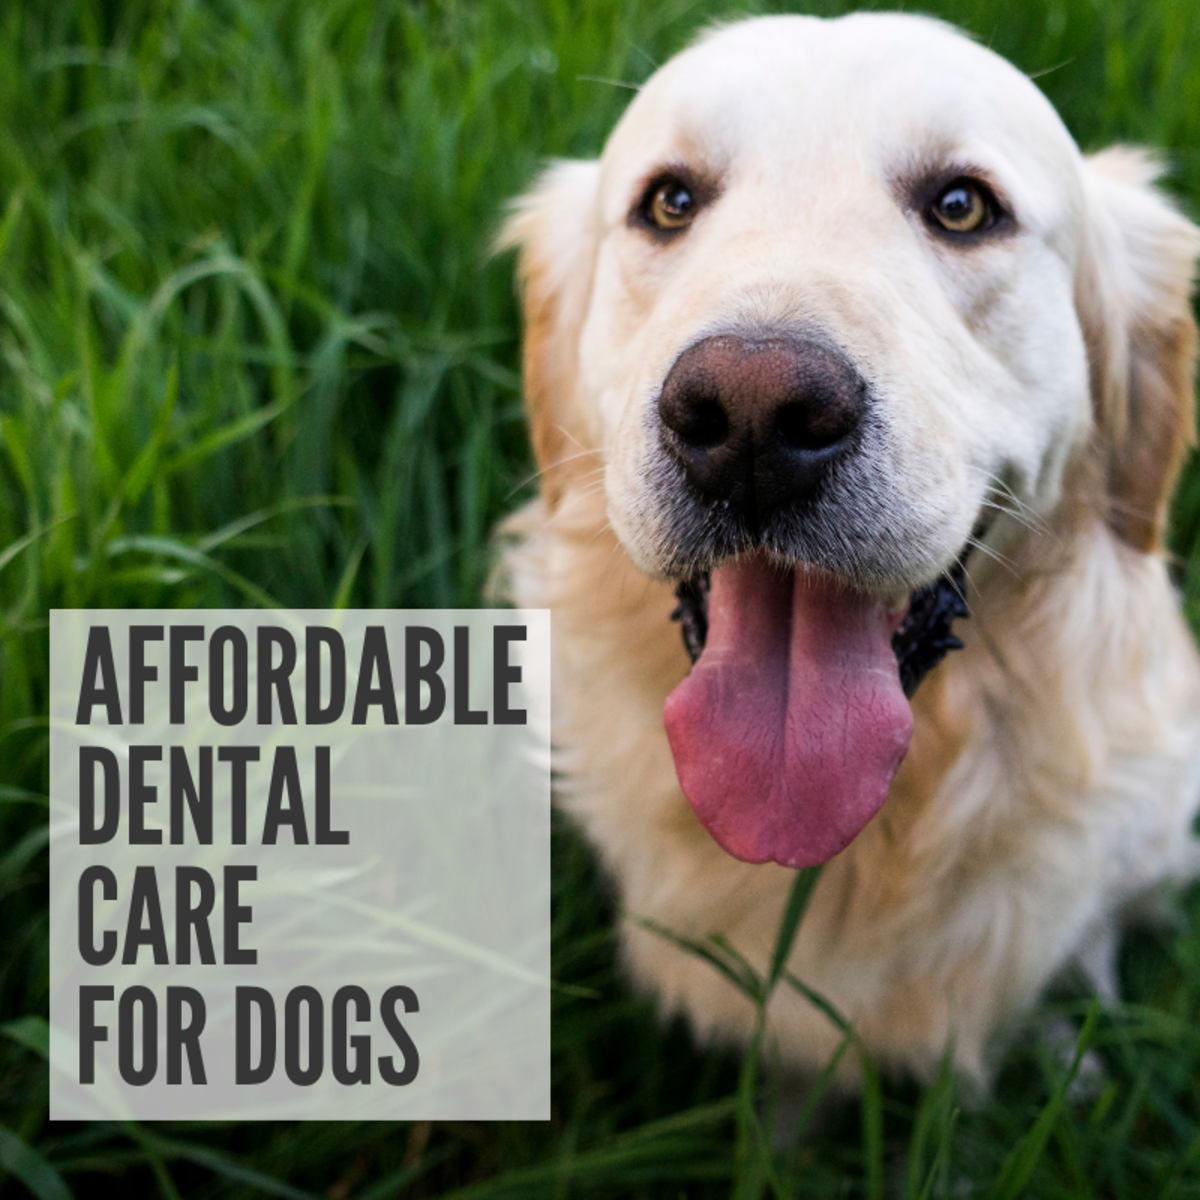 Cheap Dental Care for Dogs